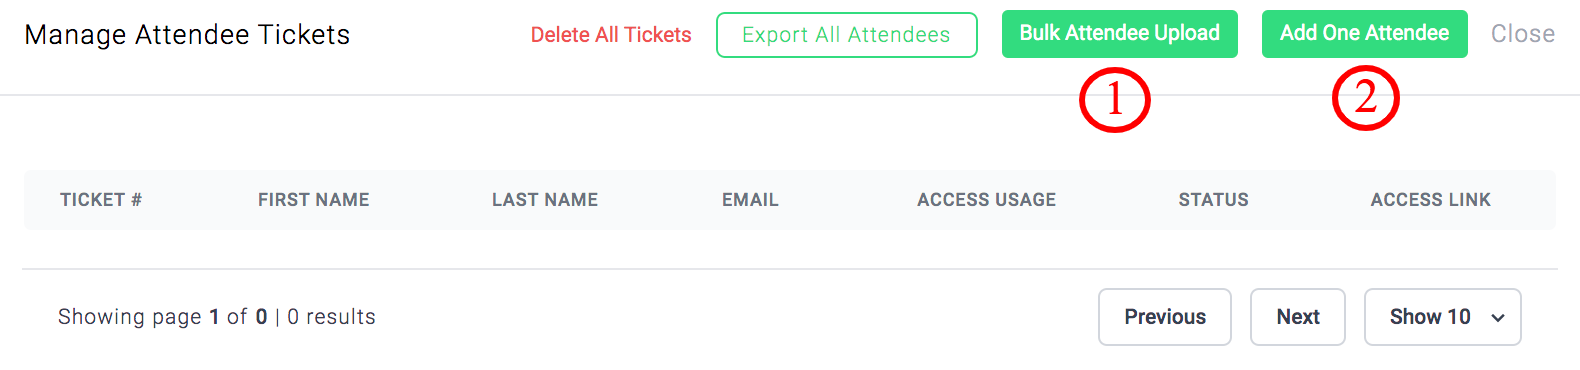 ManageTickets.png